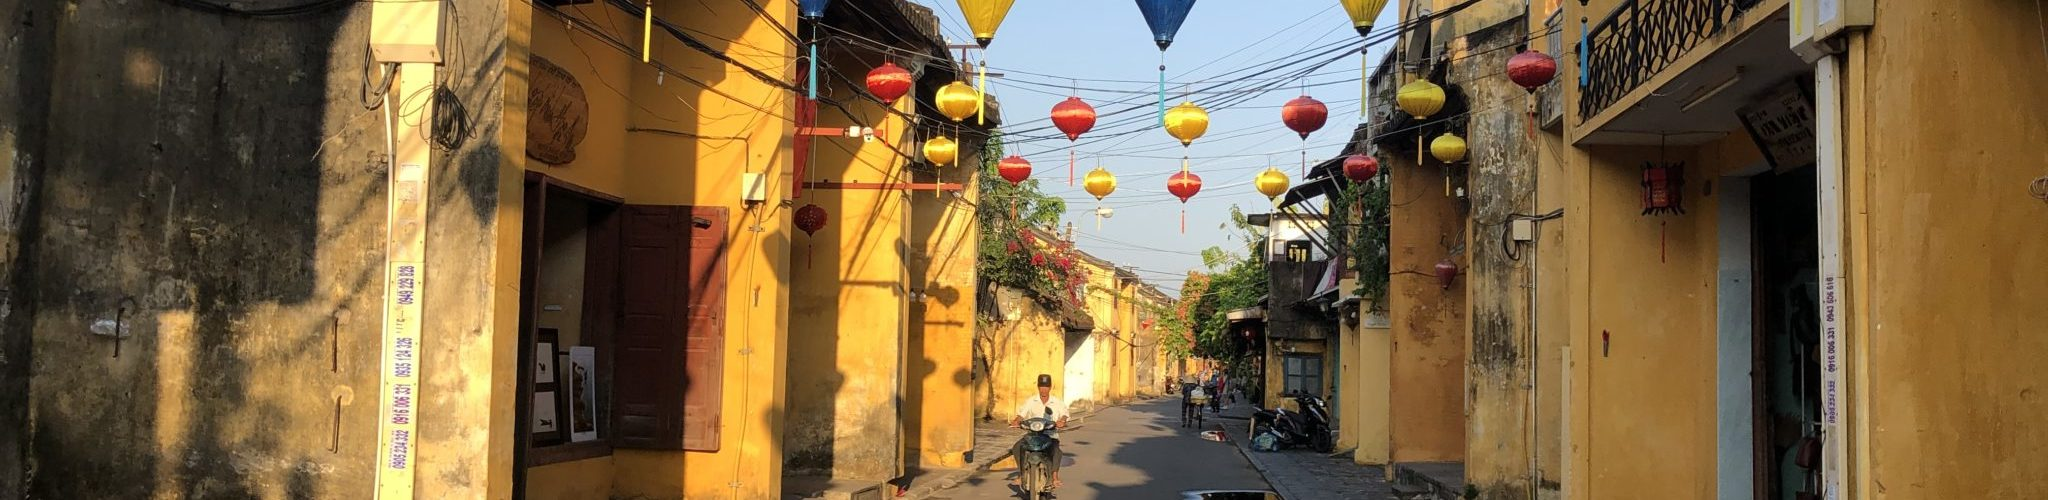 Good Morning Hoian on Private Vietnam Tour with Xinchao